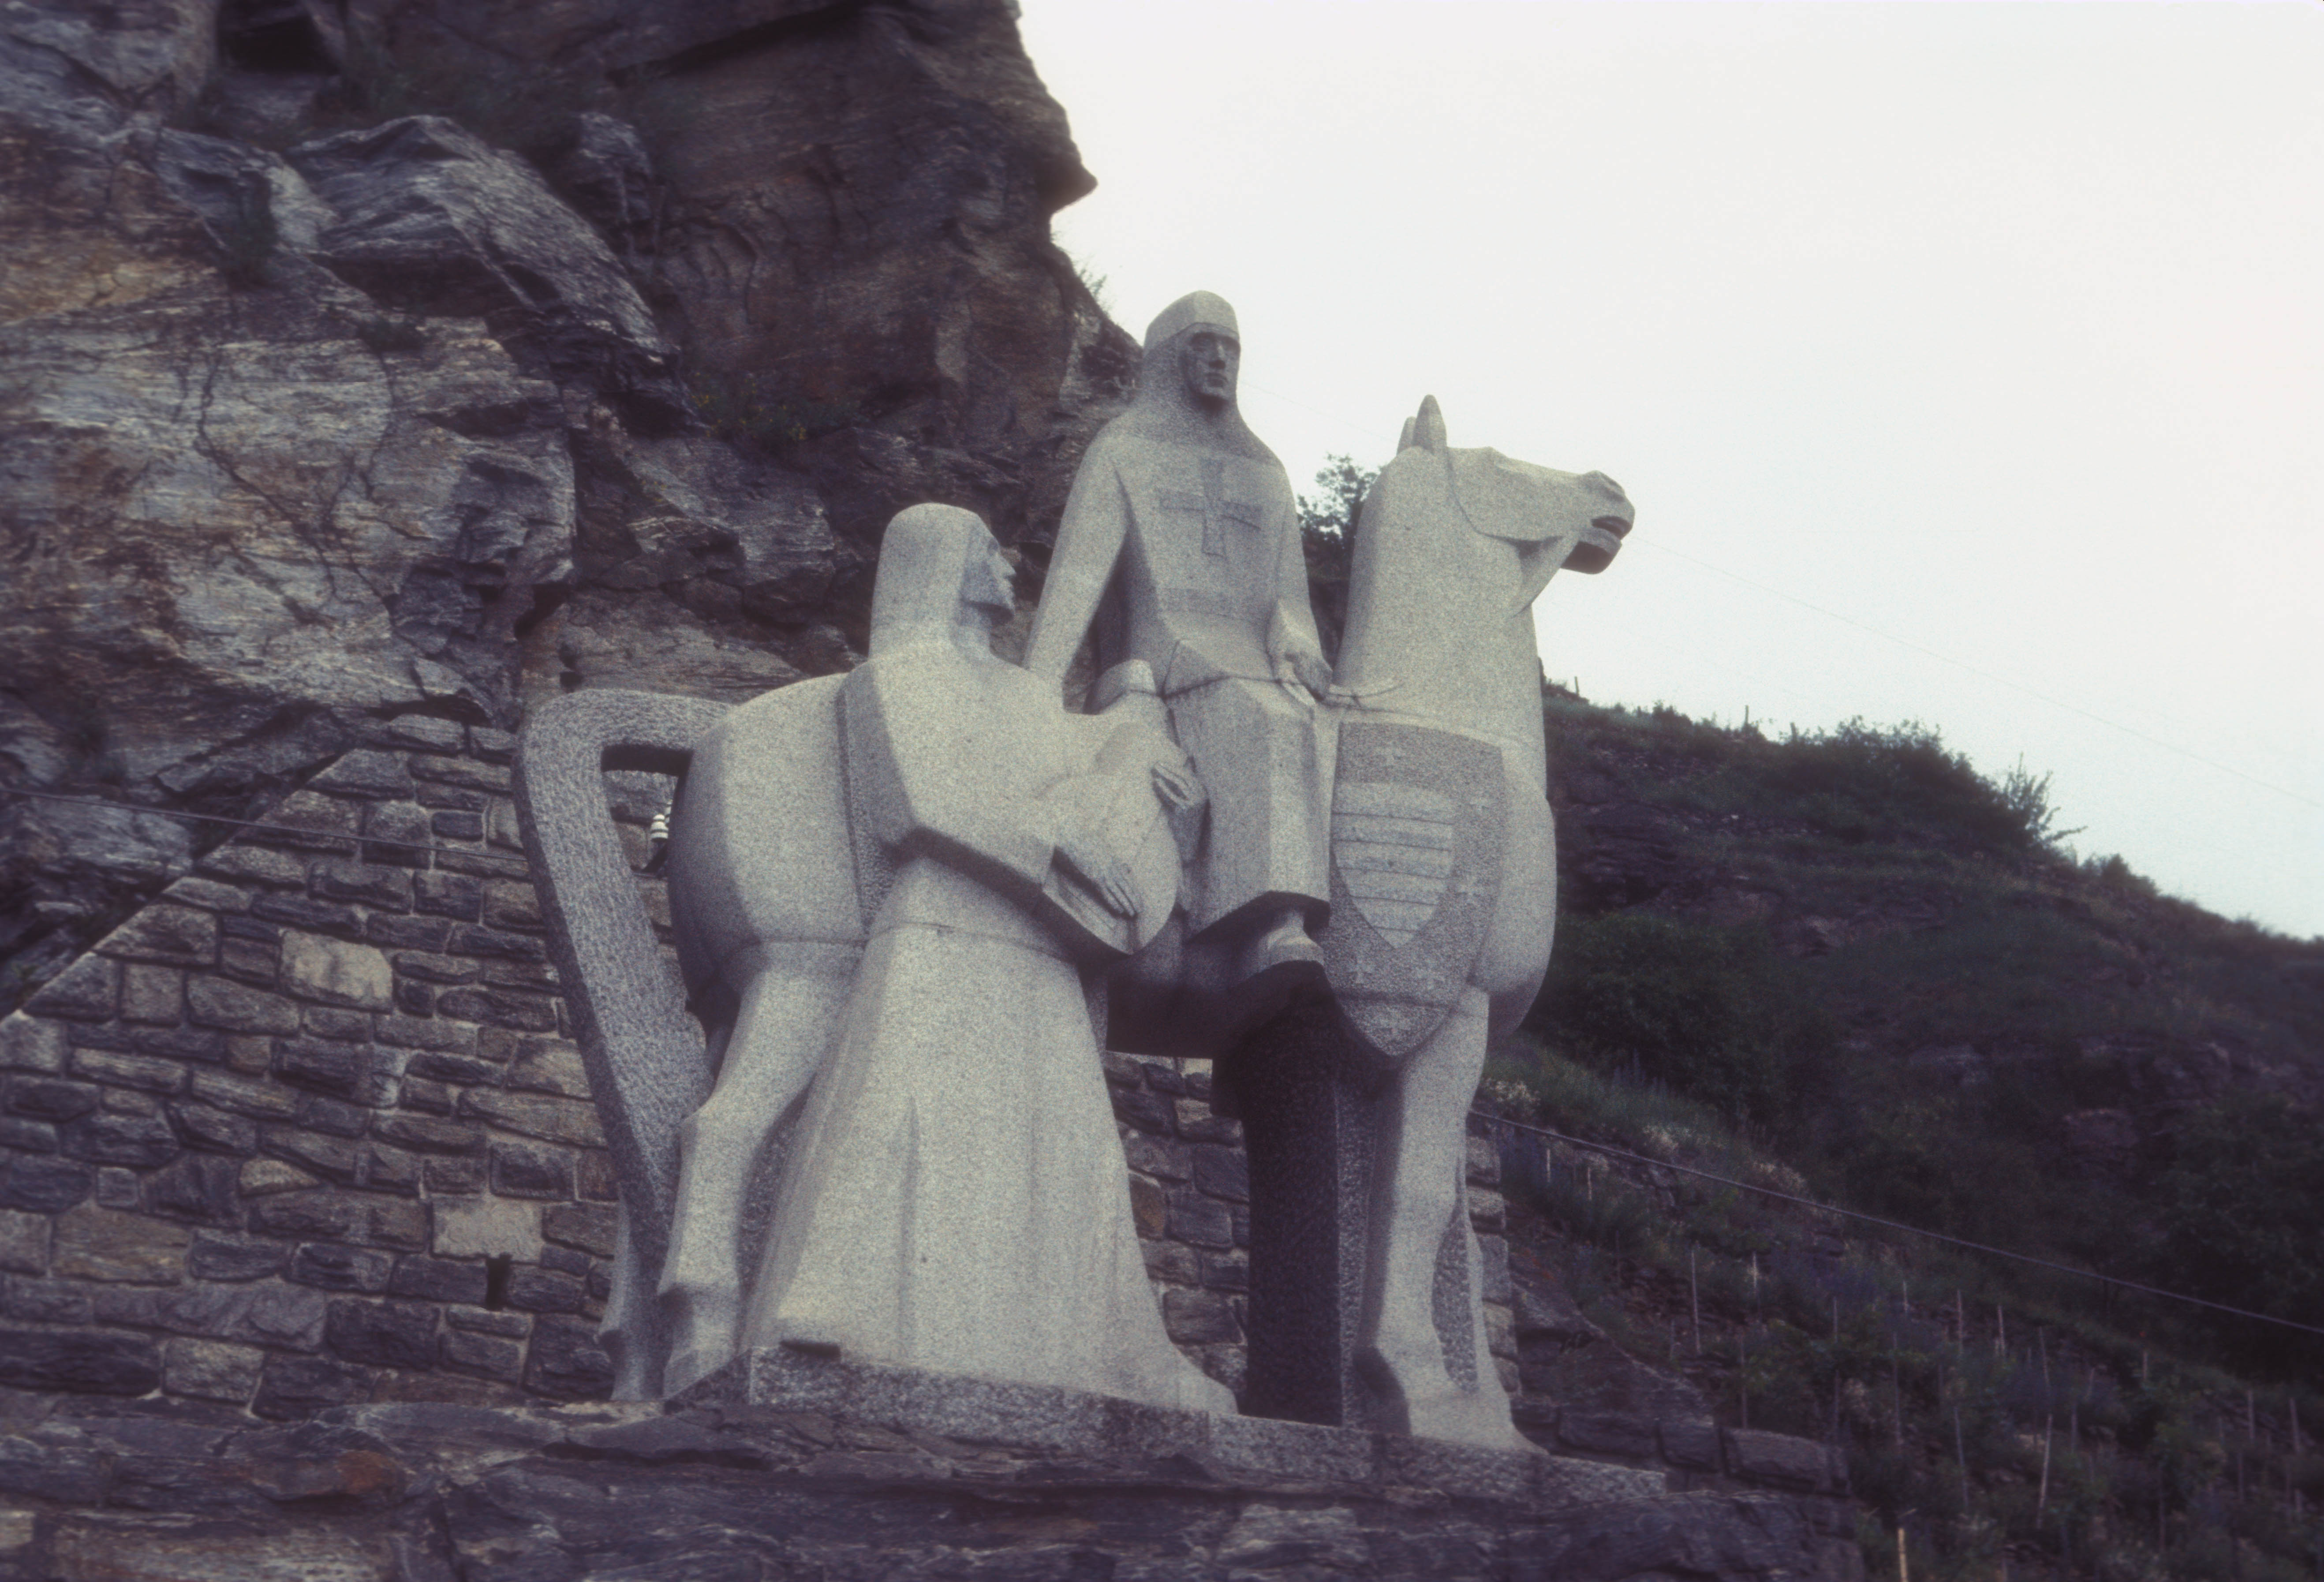 STATUE_OF_BLONDELL_NEAR_DURNSTEIN_IN_THE_WACHAU_VALLEY.jpg